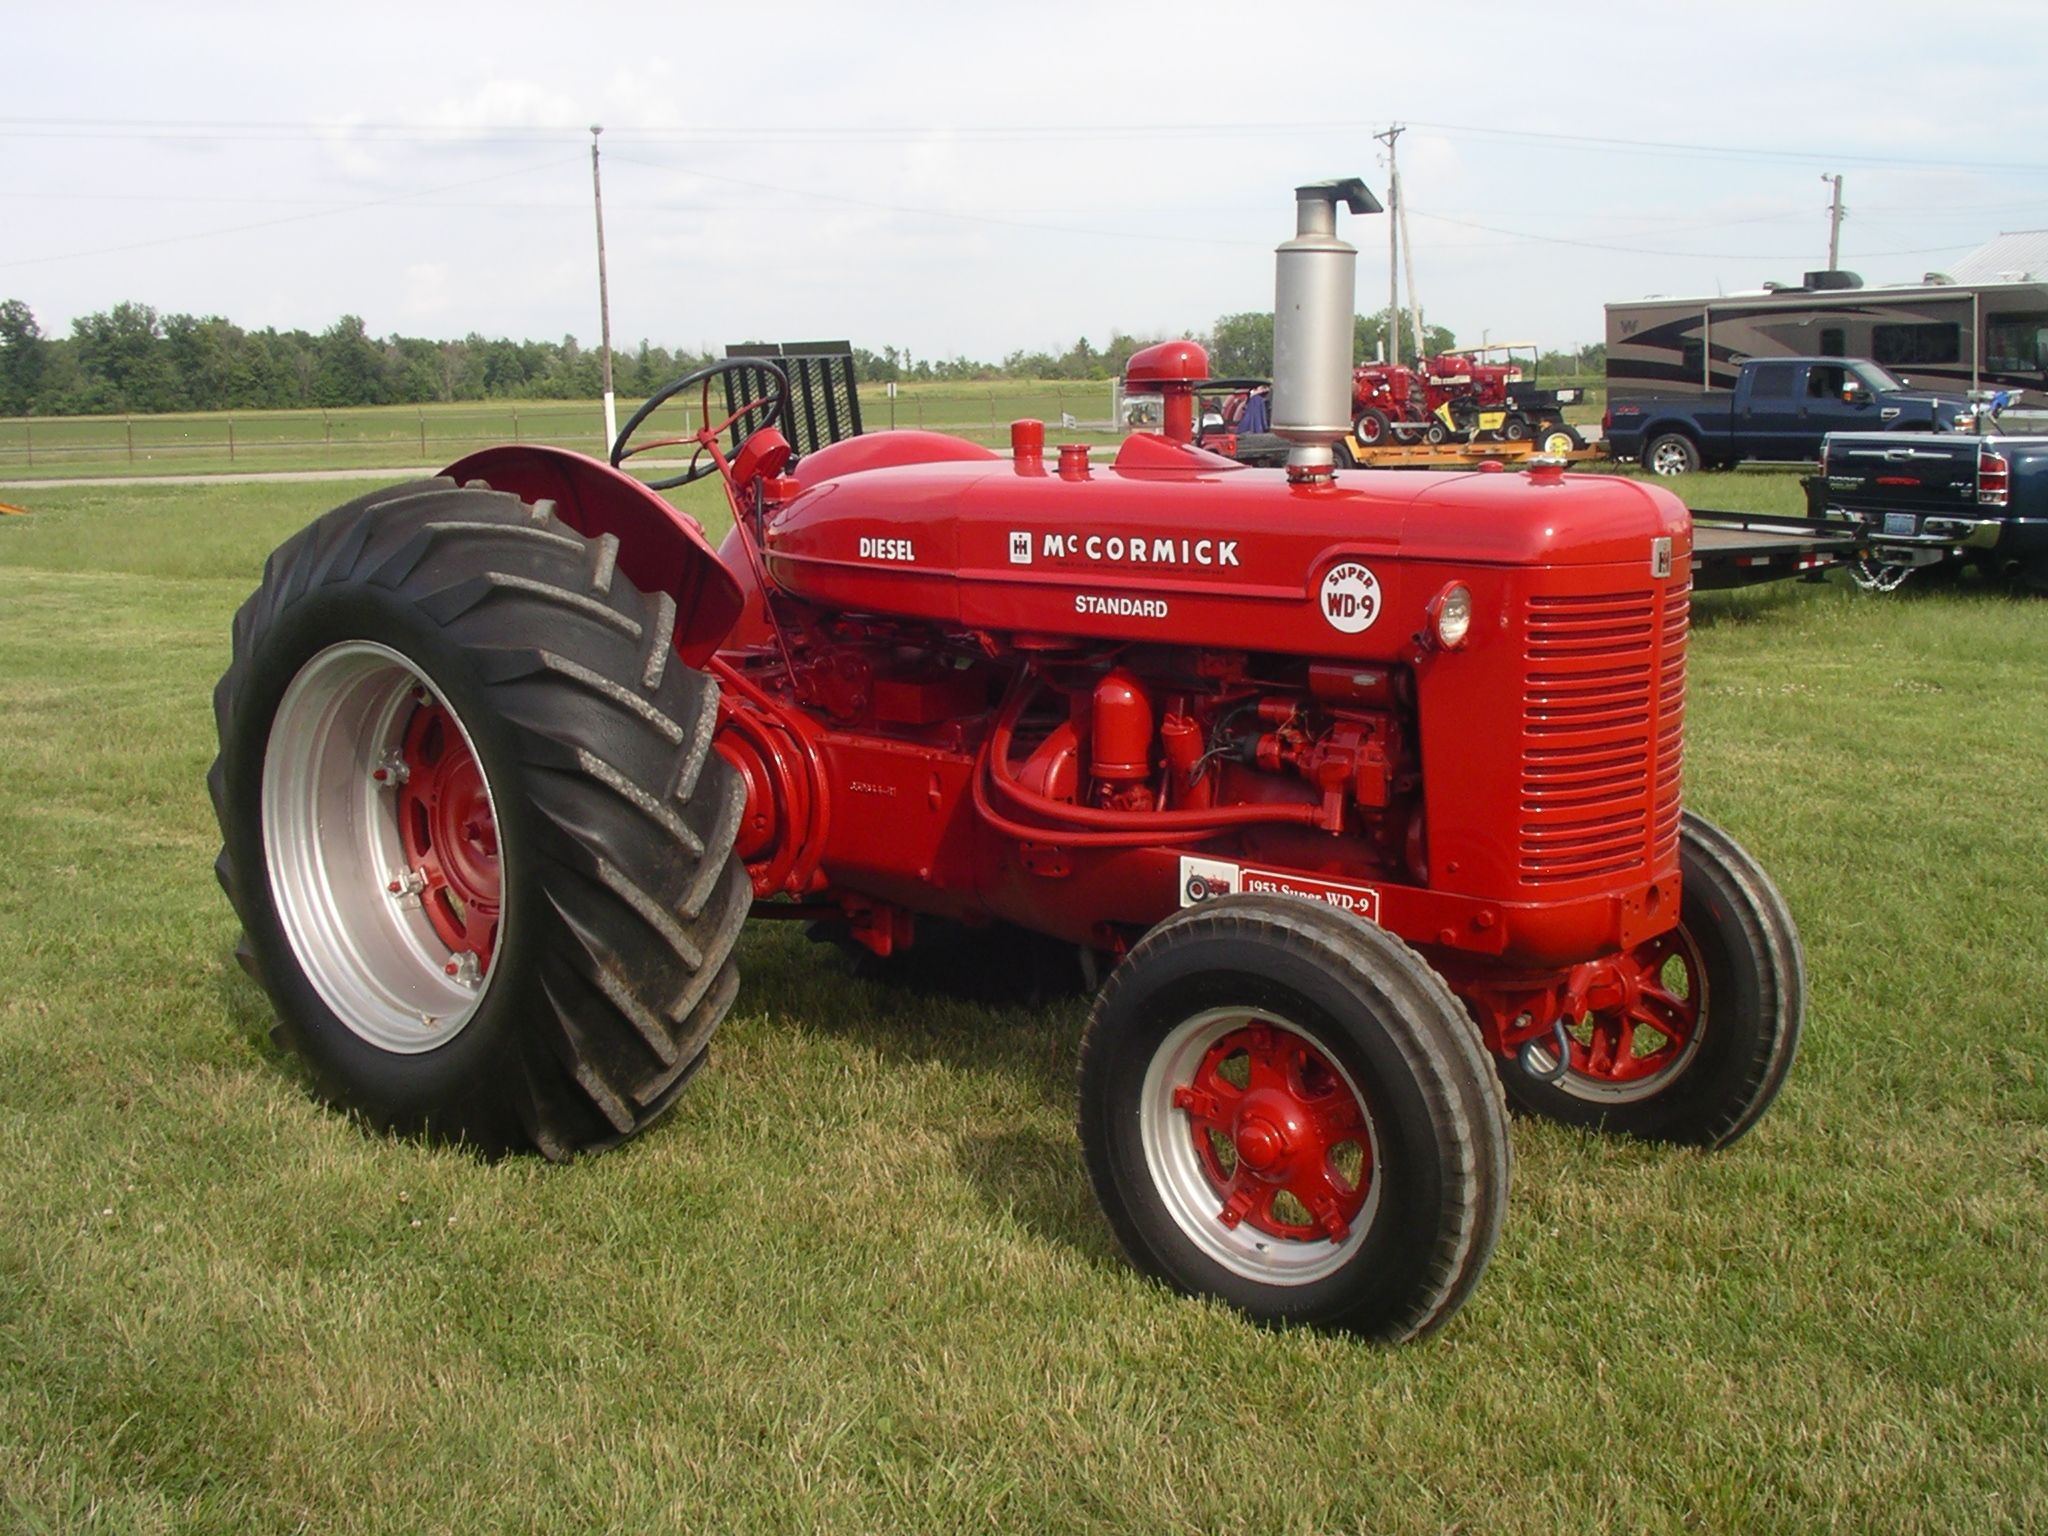 Mccormick Super Wd 9 Red Power Round Up 2013 Lima Oh Pinterest Farmall Md Wiring Diagram Tractors Old Antique Vintage